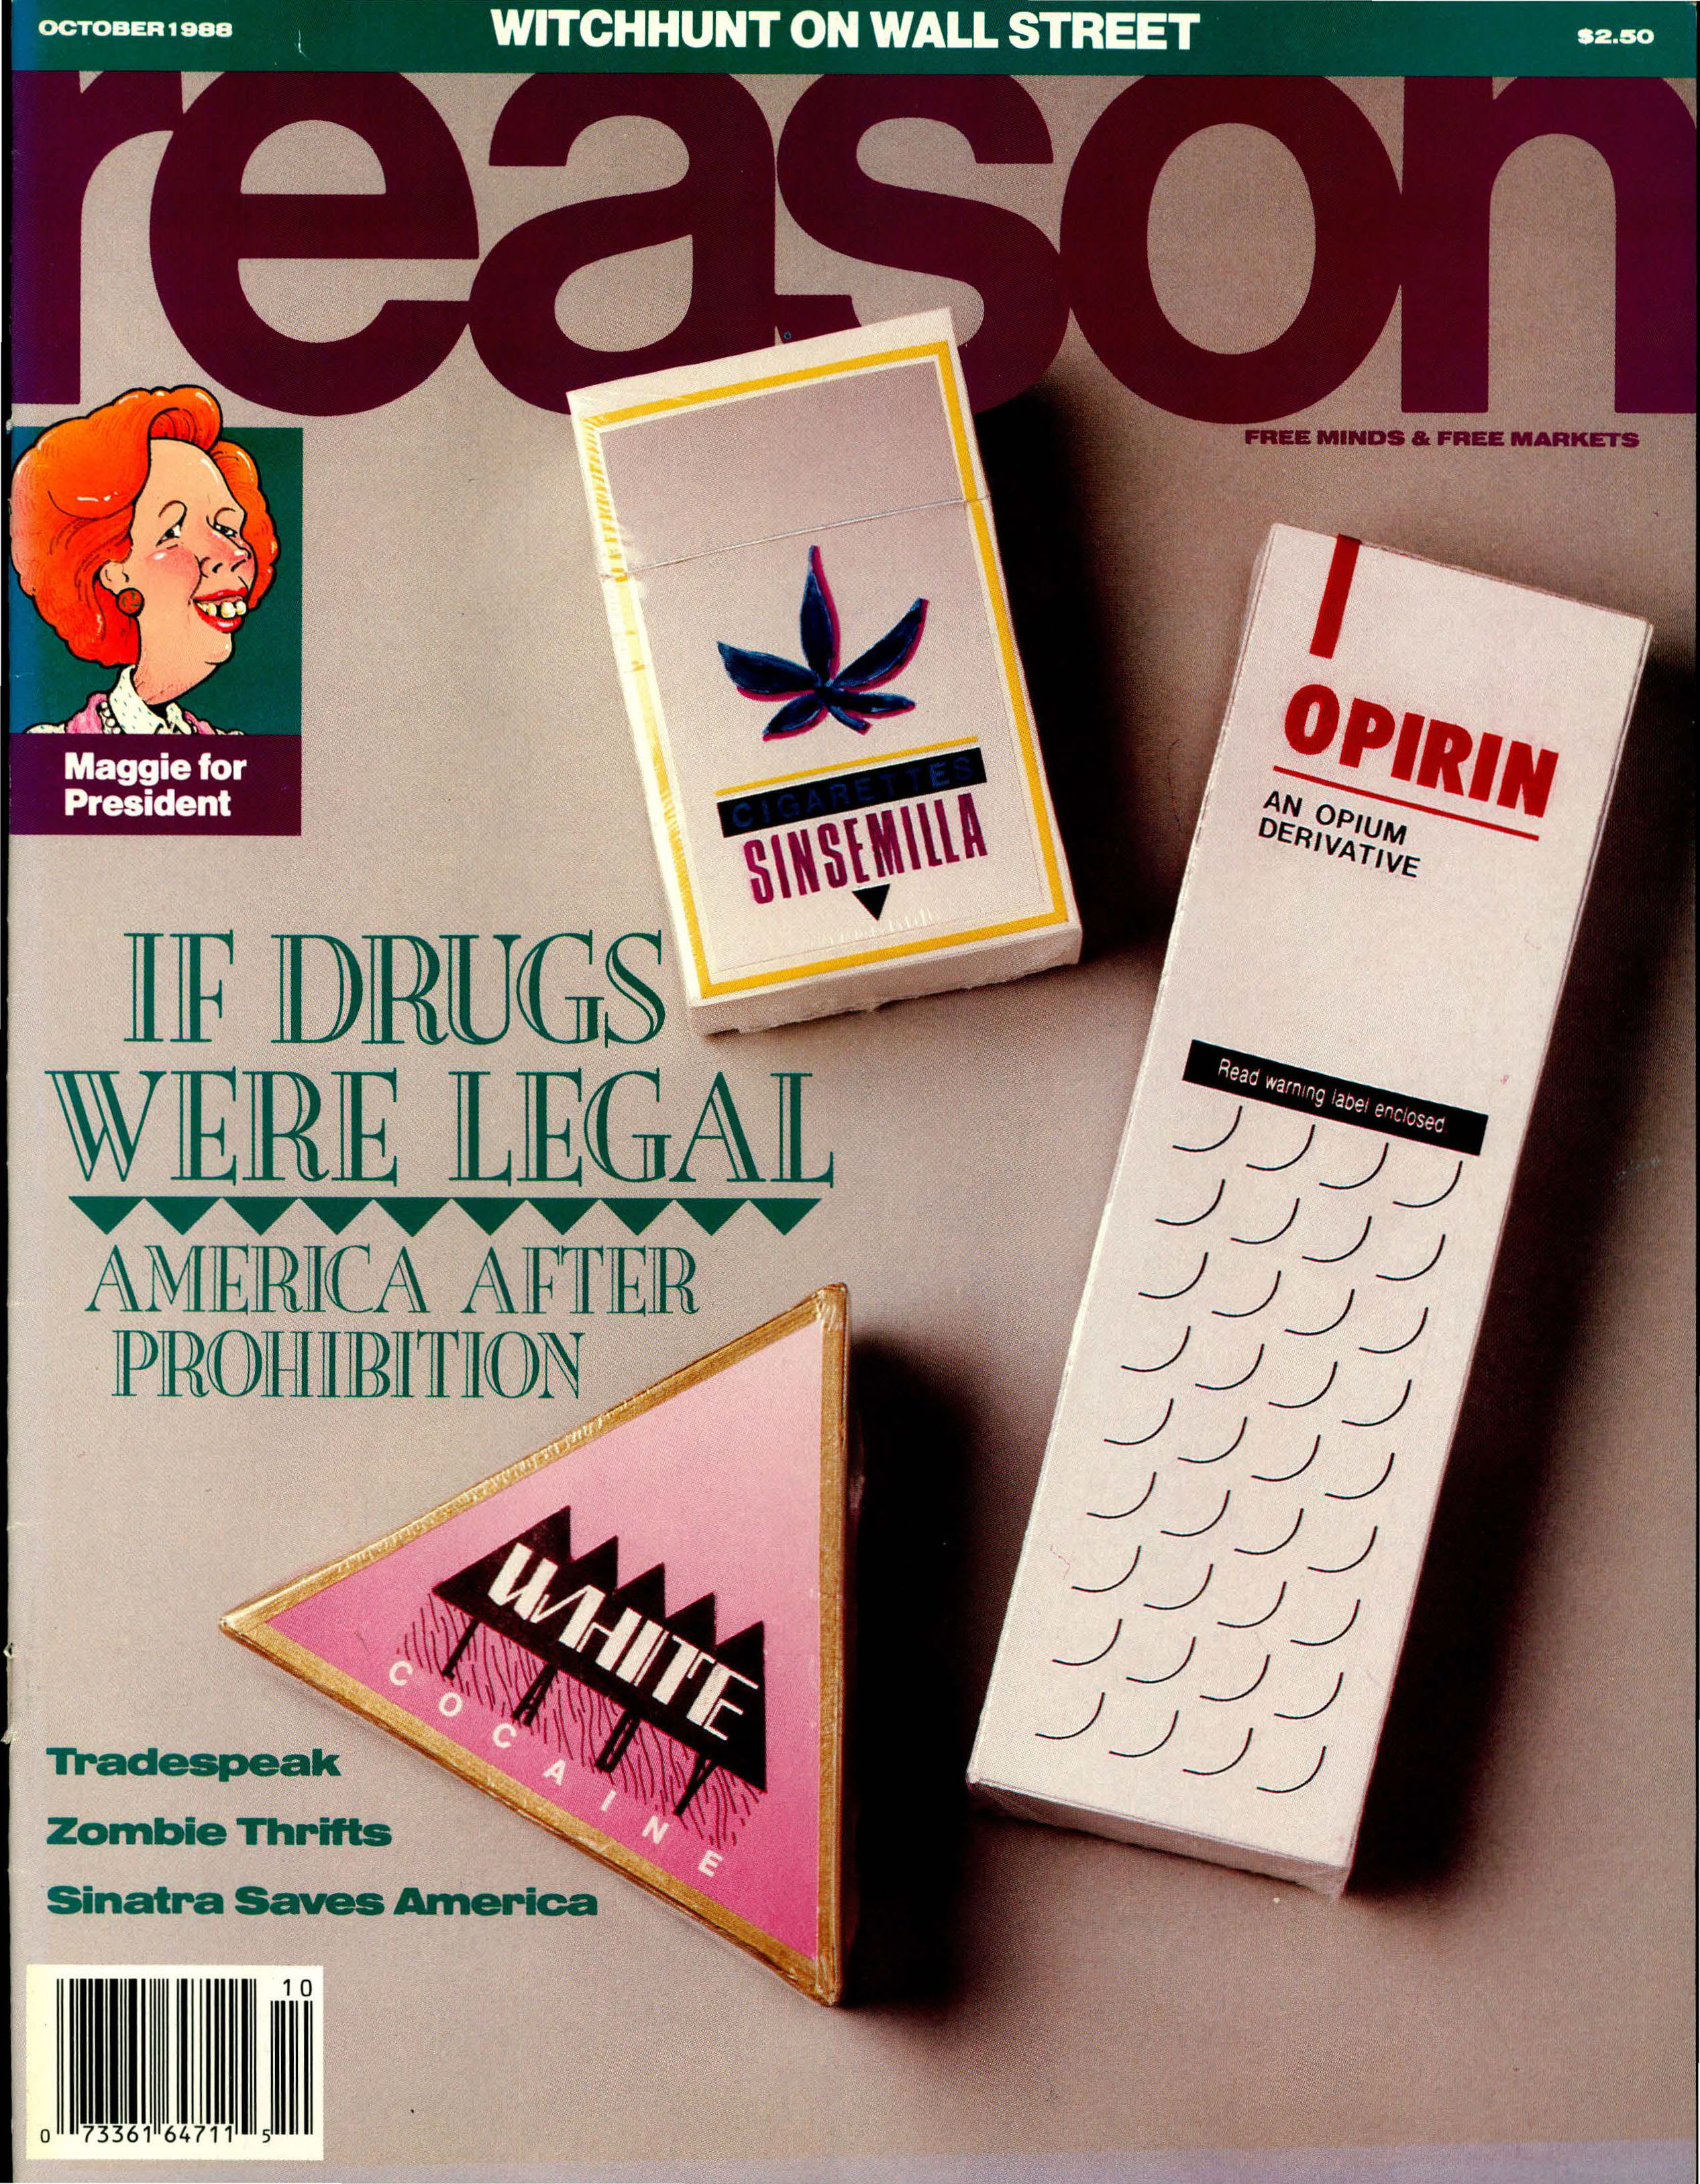 Reason Magazine, October 1988 cover image